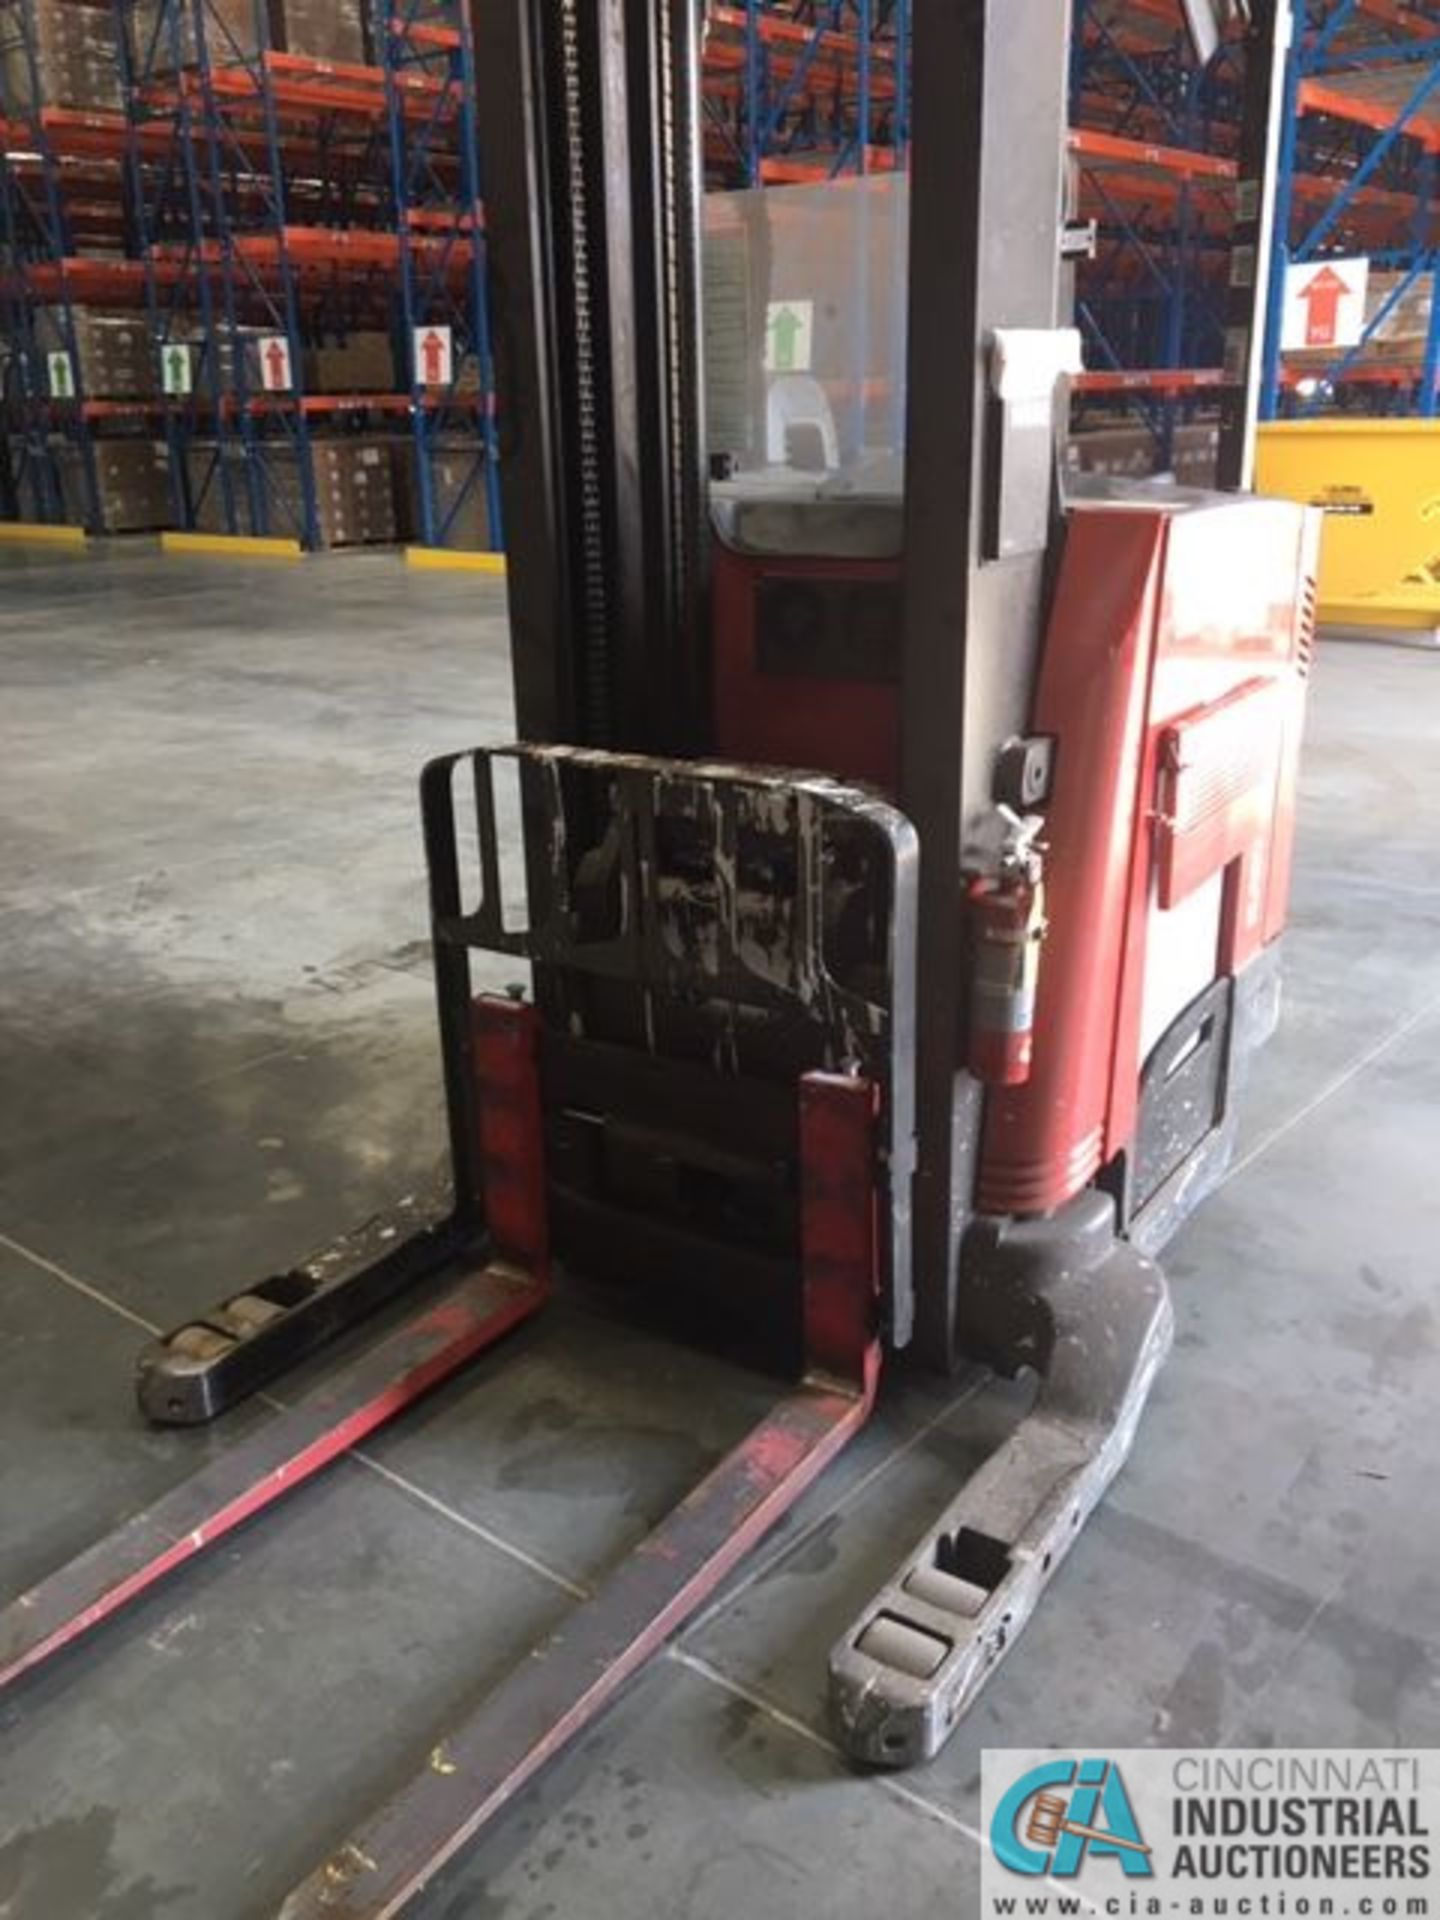 RAYMOND MODEL 750-R45TT ELECTRIC REACH TRUCK; S/N 750-15-BC47246, 36-VOLT BATTERY CHARGER, 36-VOLT - Image 3 of 9